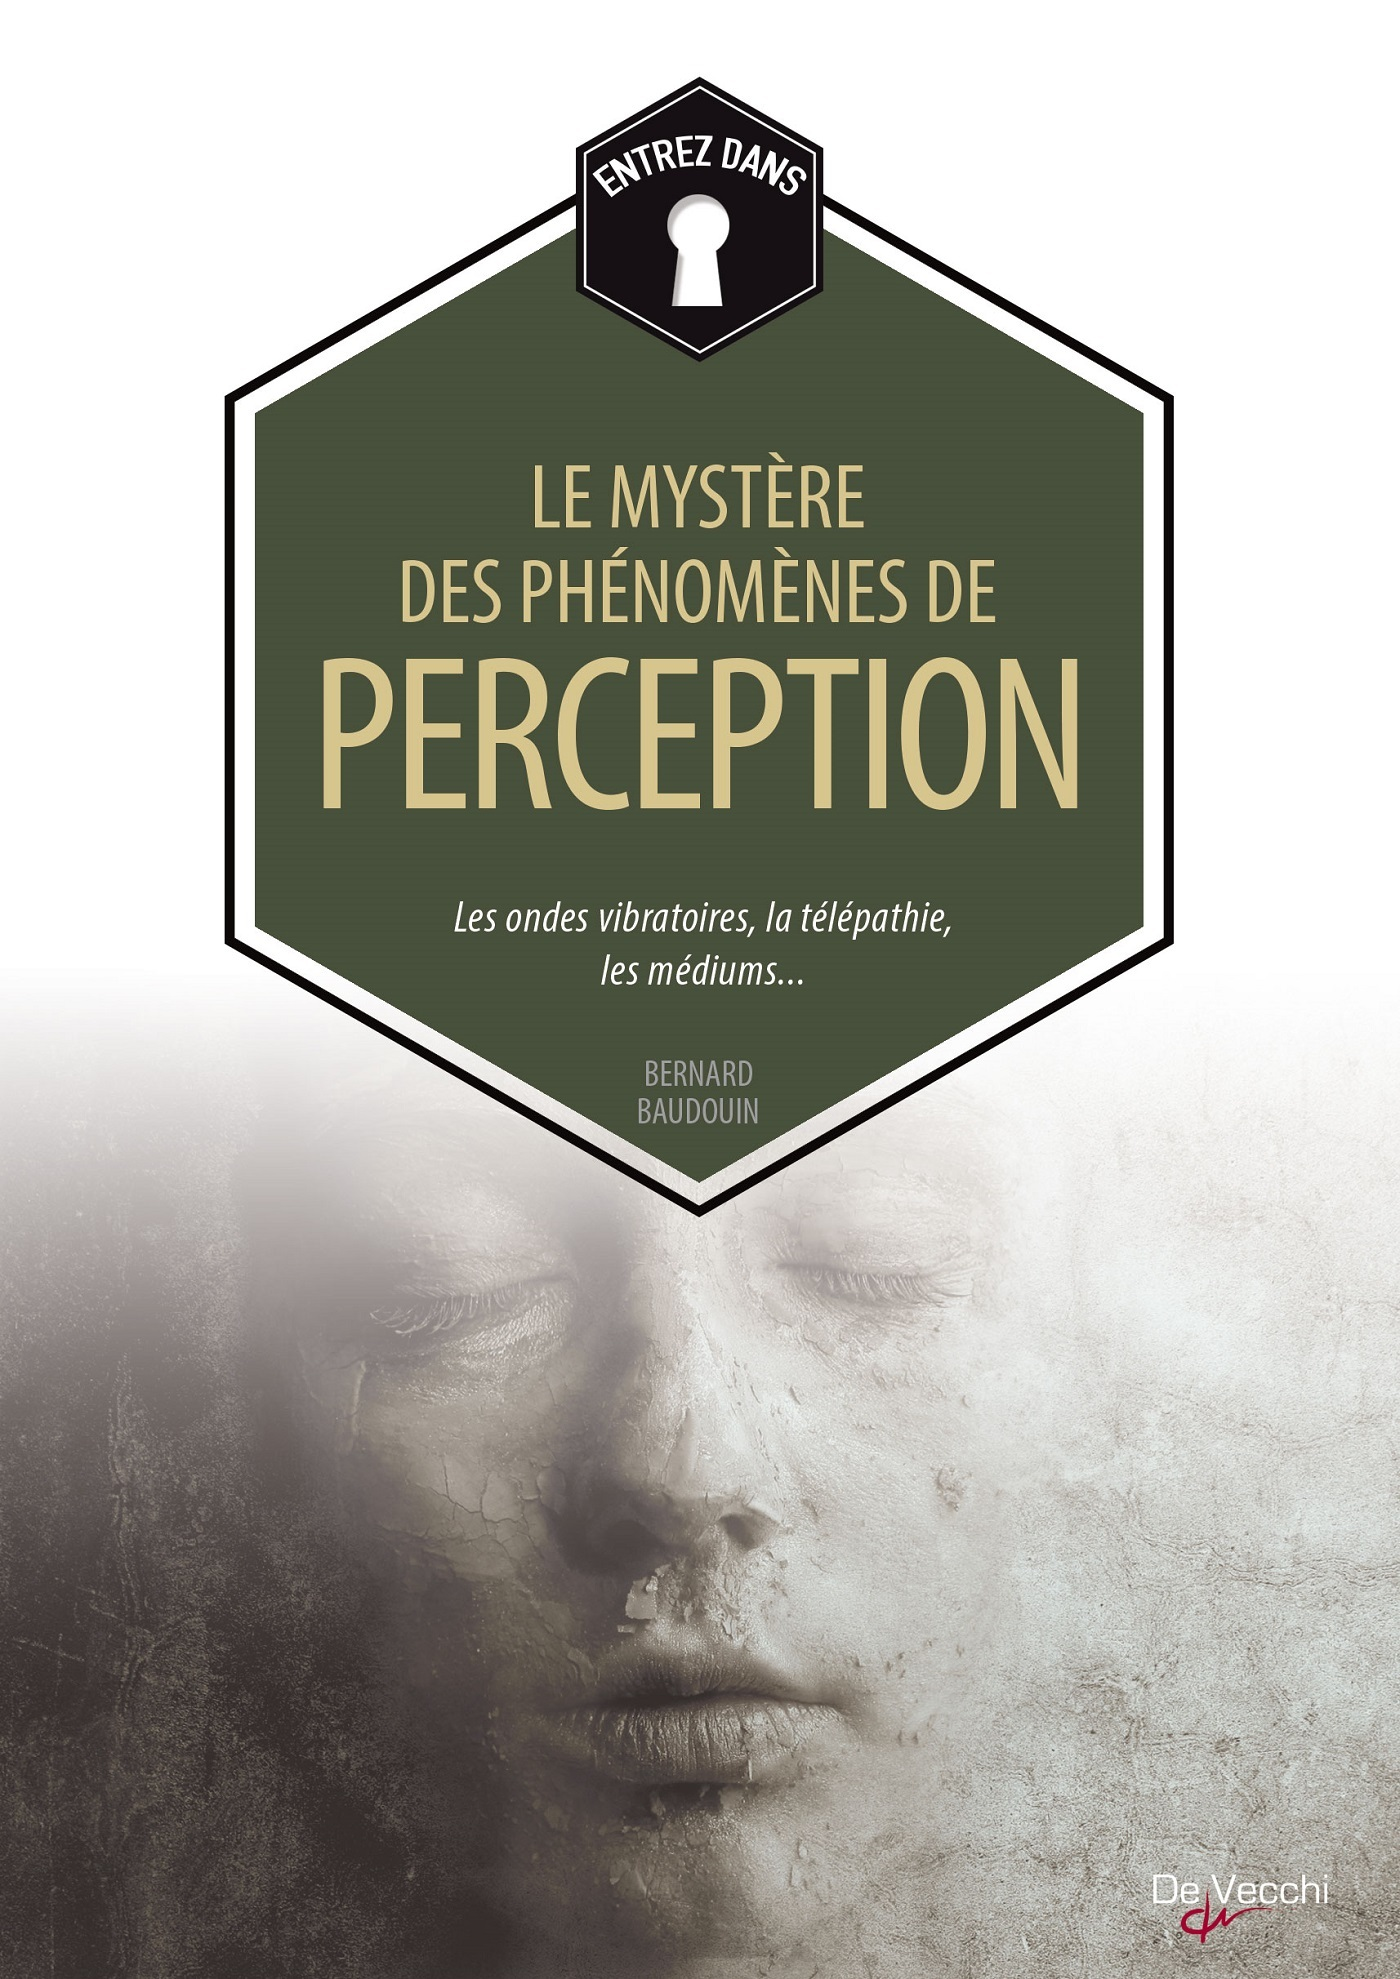 LES MYSTERES DES PHENOMENES DE PERCEPTION